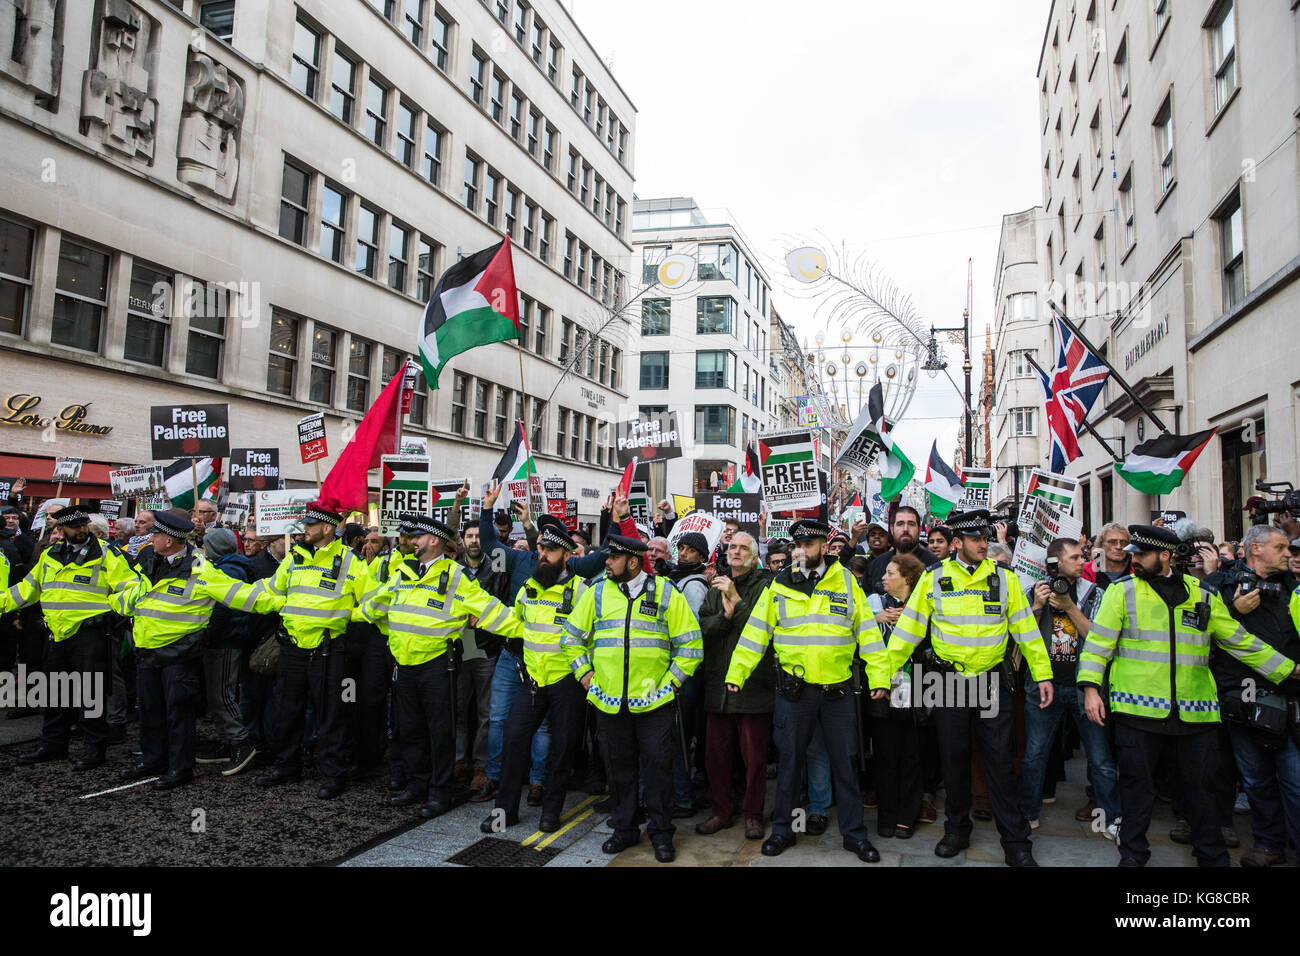 London, UK. 4th November, 2017. Campaigners for Palestine march through London to demand justice and equal rights Stock Photo